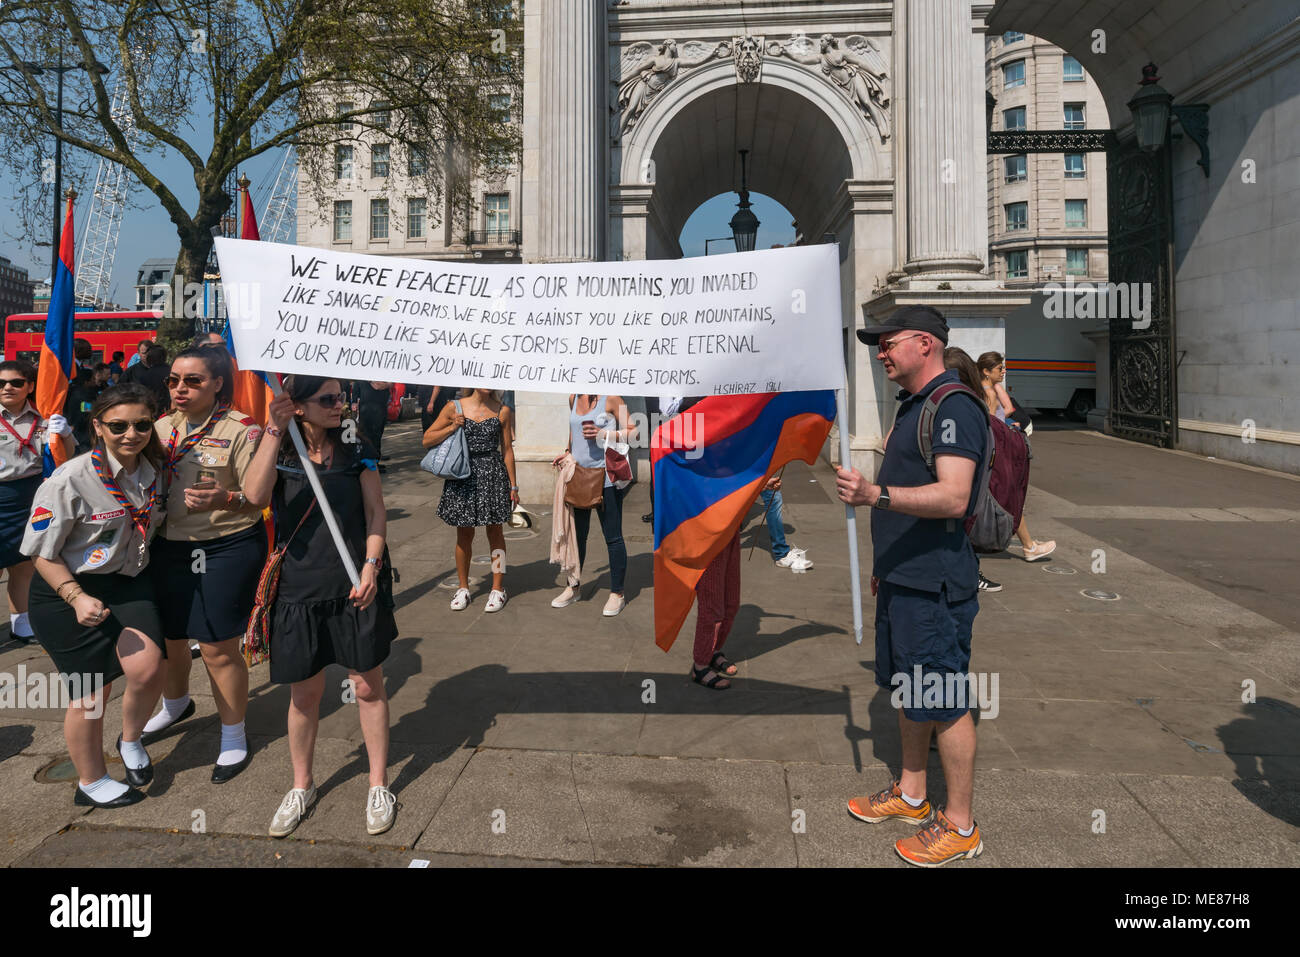 London, UK. 21st April 2018. Armenians meet at Marble Arch to march through London to the Cenotaph at the start of a series of events commemorating the 103rd anniversary of the beginning of the Armenian Genocide.  A banner has a poem written in 1941 by H Shiraz, 'We were peaceful as our mountains You invaded like savage storms. We rose against you like our mountains, You howled like savage storms. Credit: Peter Marshall/Alamy Live News - Stock Image